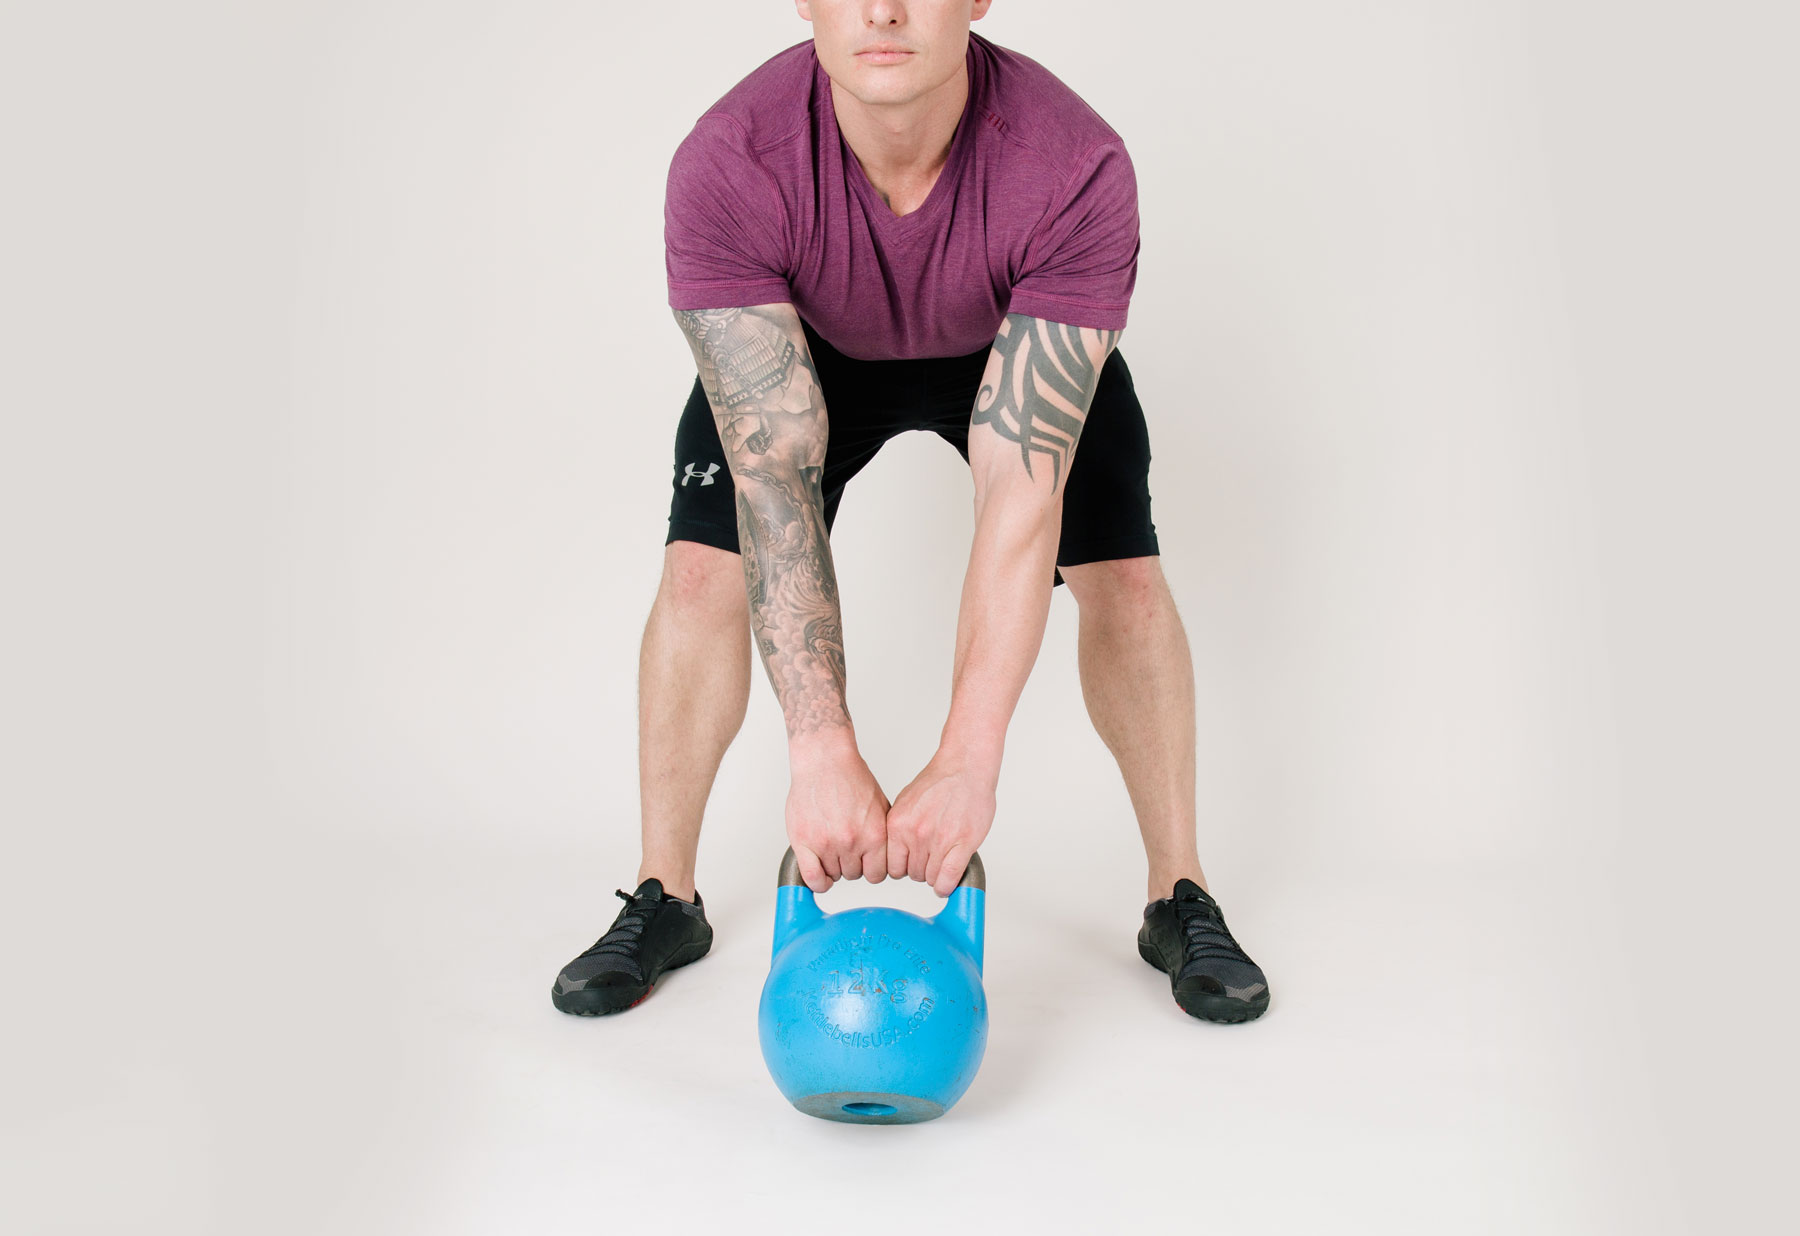 34be1b16c7a0f6 Kettlebell Swing  How to Do the Perfect Swing